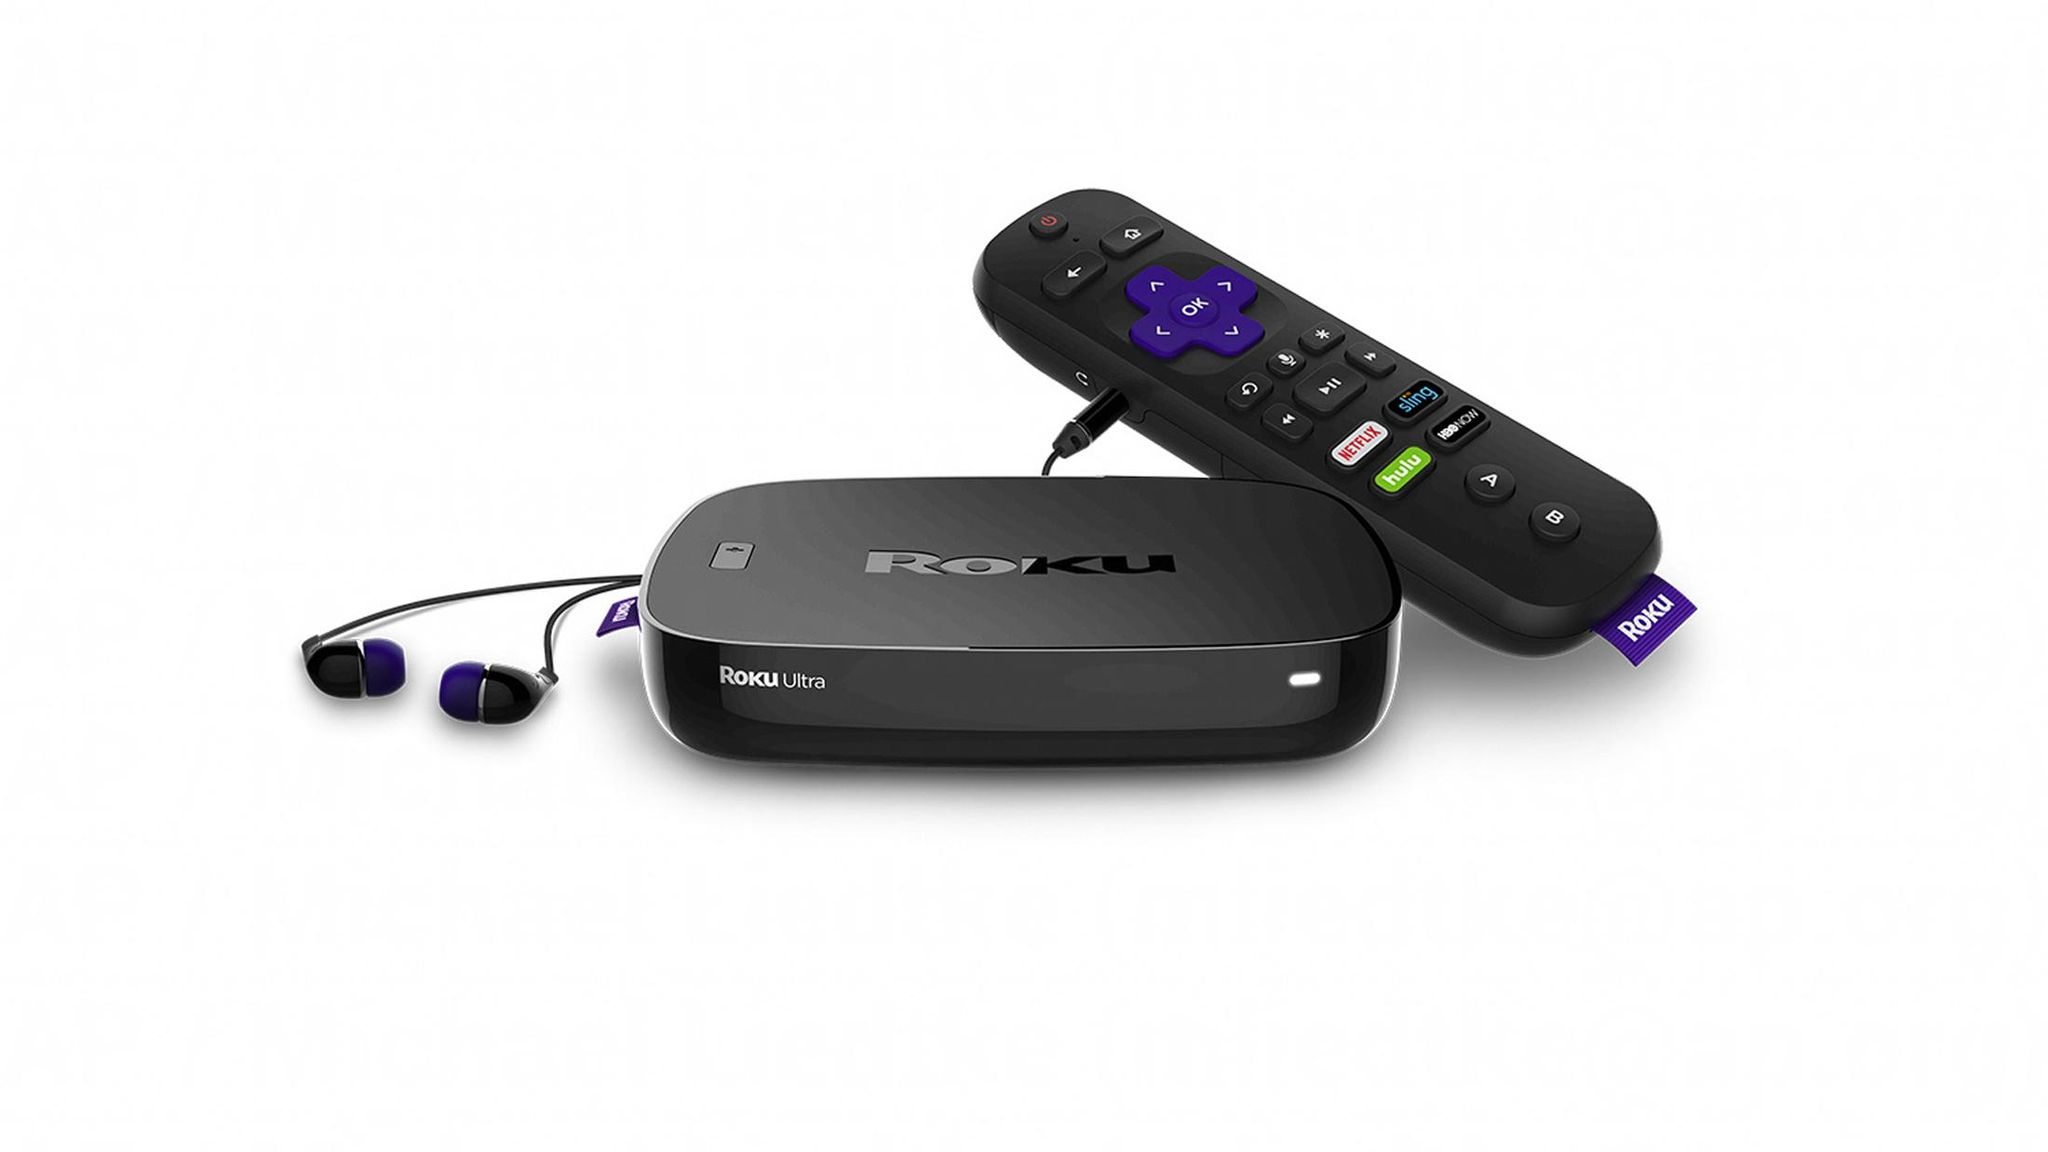 2048x1152 Roku cuts price on top streaming player to counter Apple TV ...